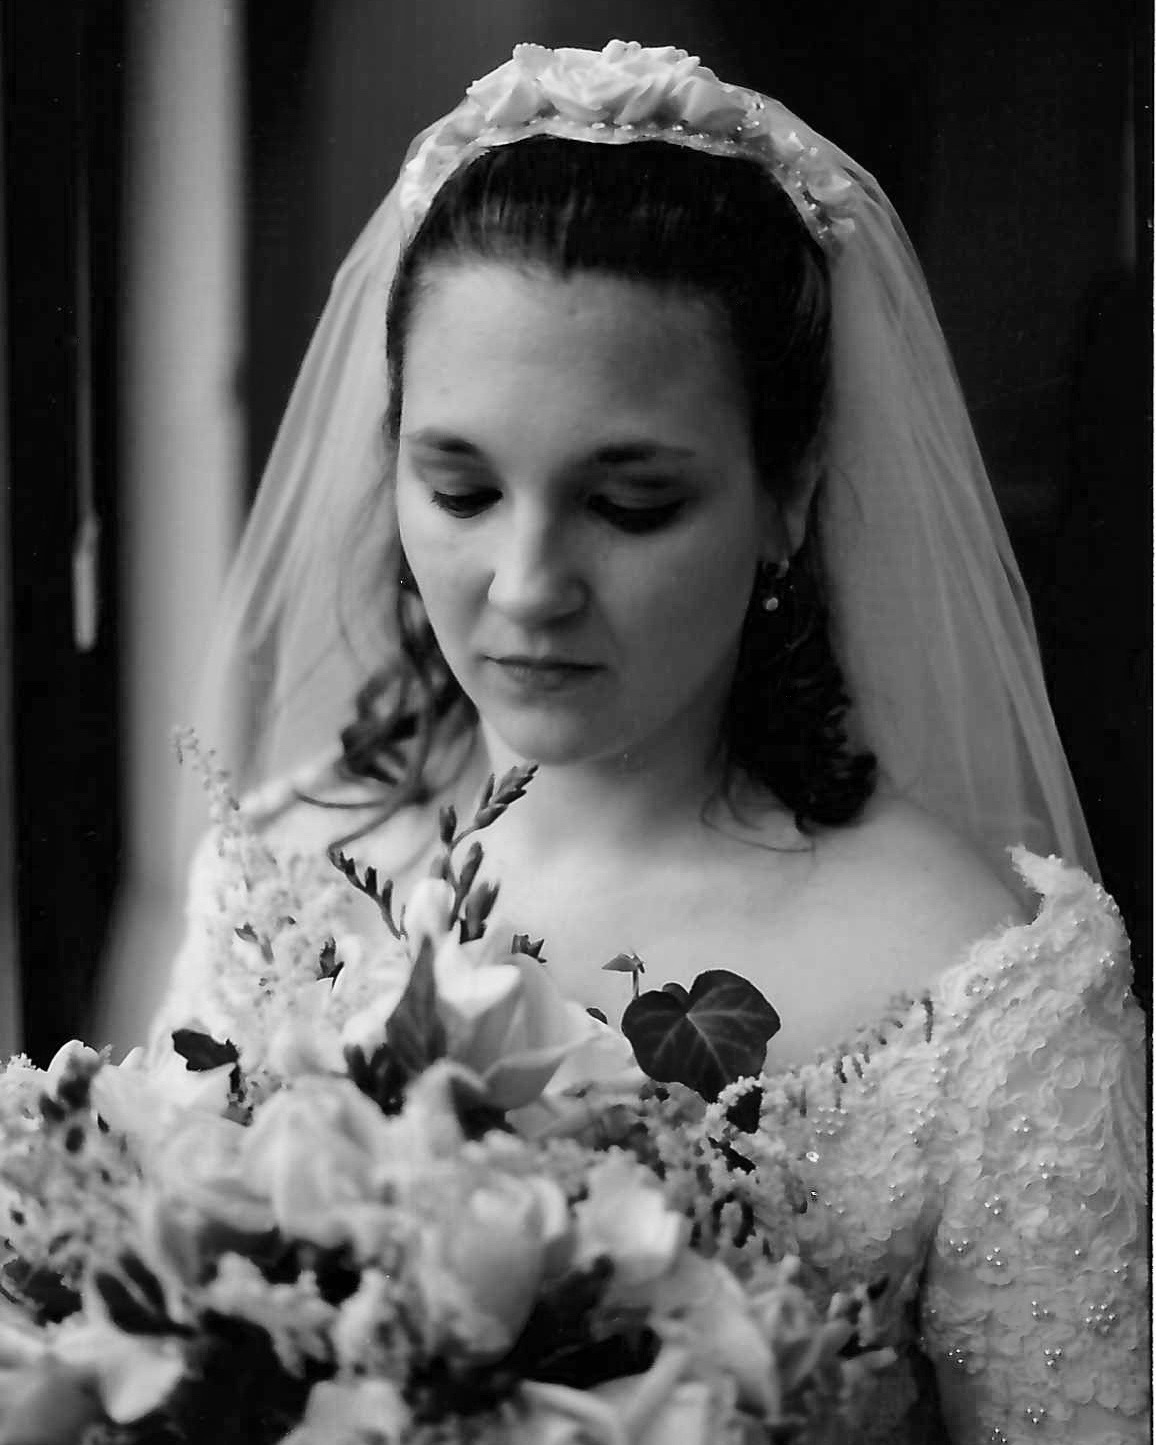 I designed Dawn's headpiece in 1999 before our opening. Her headpiece frame was custom made and created from buckram and wire. The silk flowers on her headpiece were cut from pastel-colored silks to tie in softly with her bouquet.